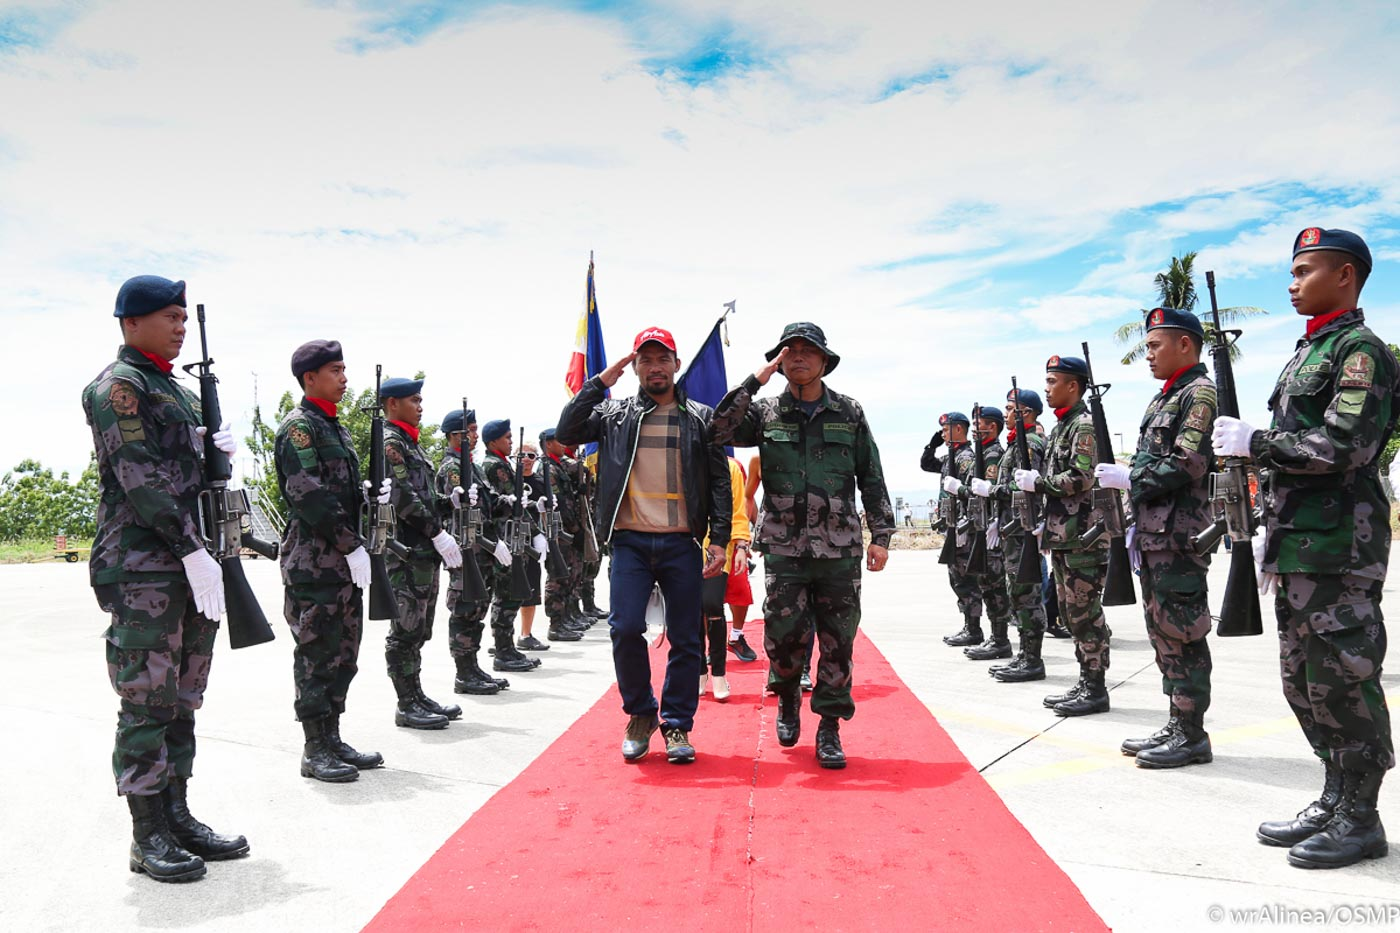 Manny Pacquiao walks to his airplane with a military escort. Photo by Wendell Alinea